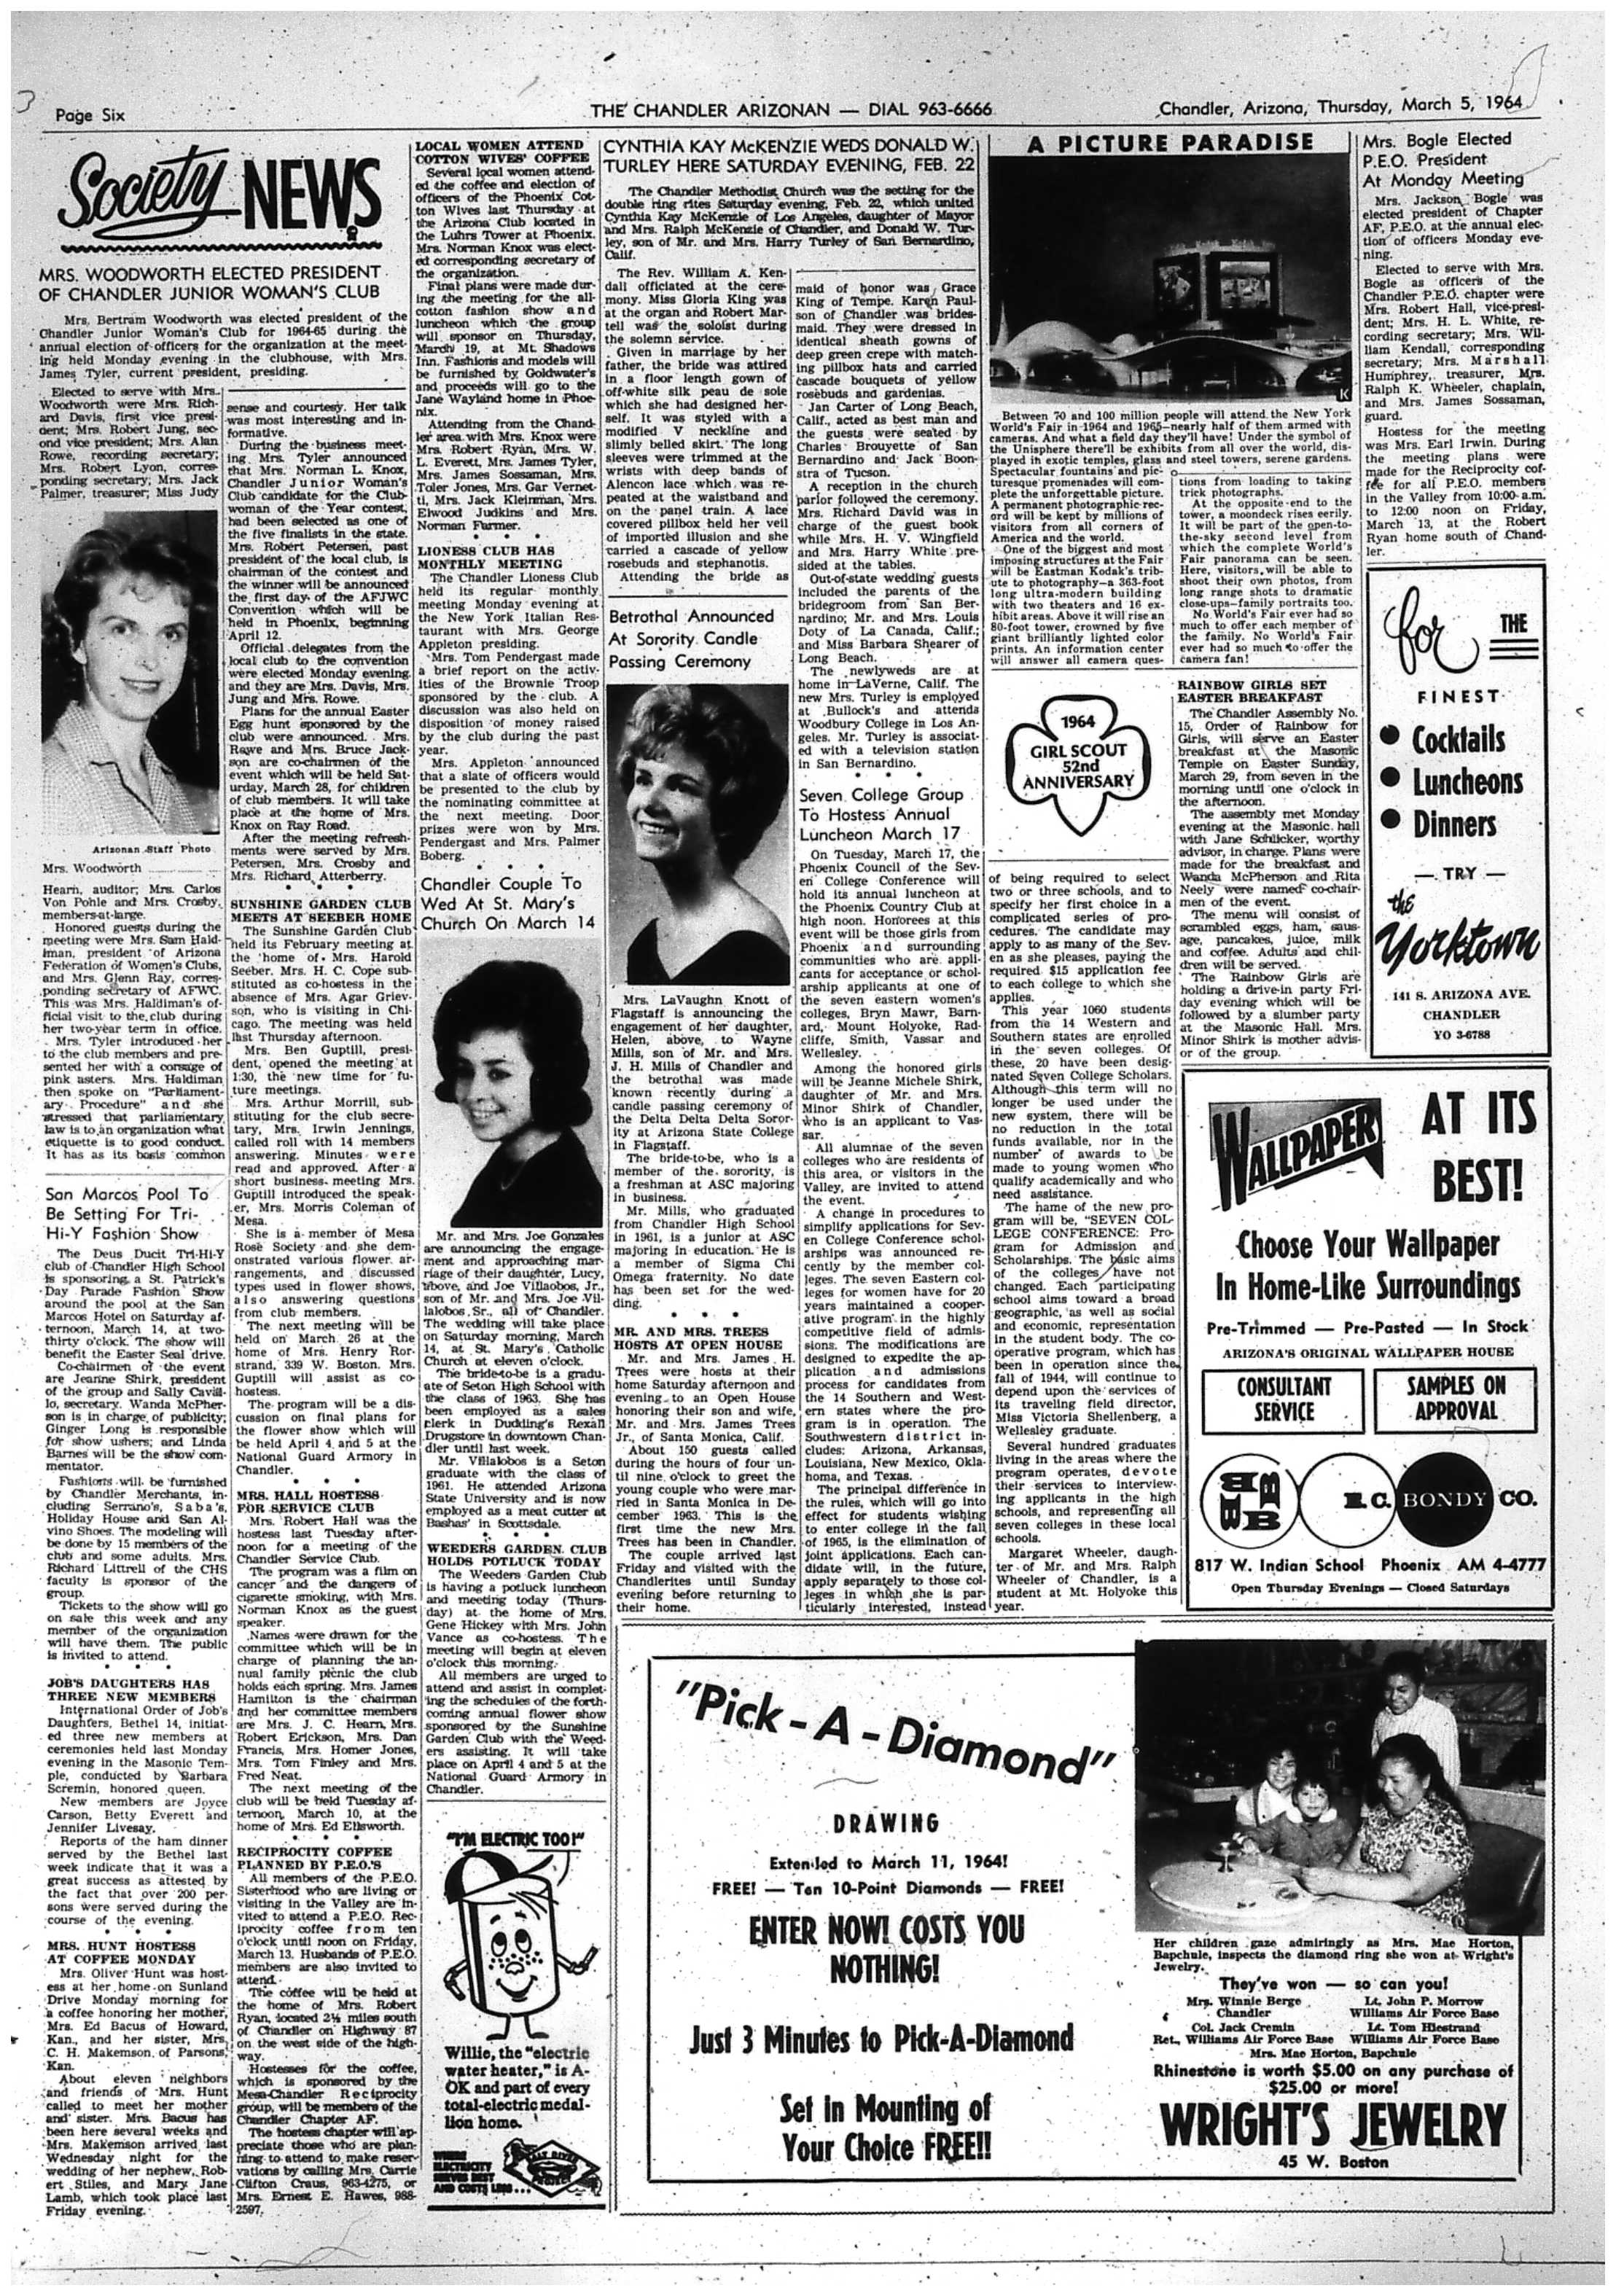 03-05-1964 - Page 6 .jpg